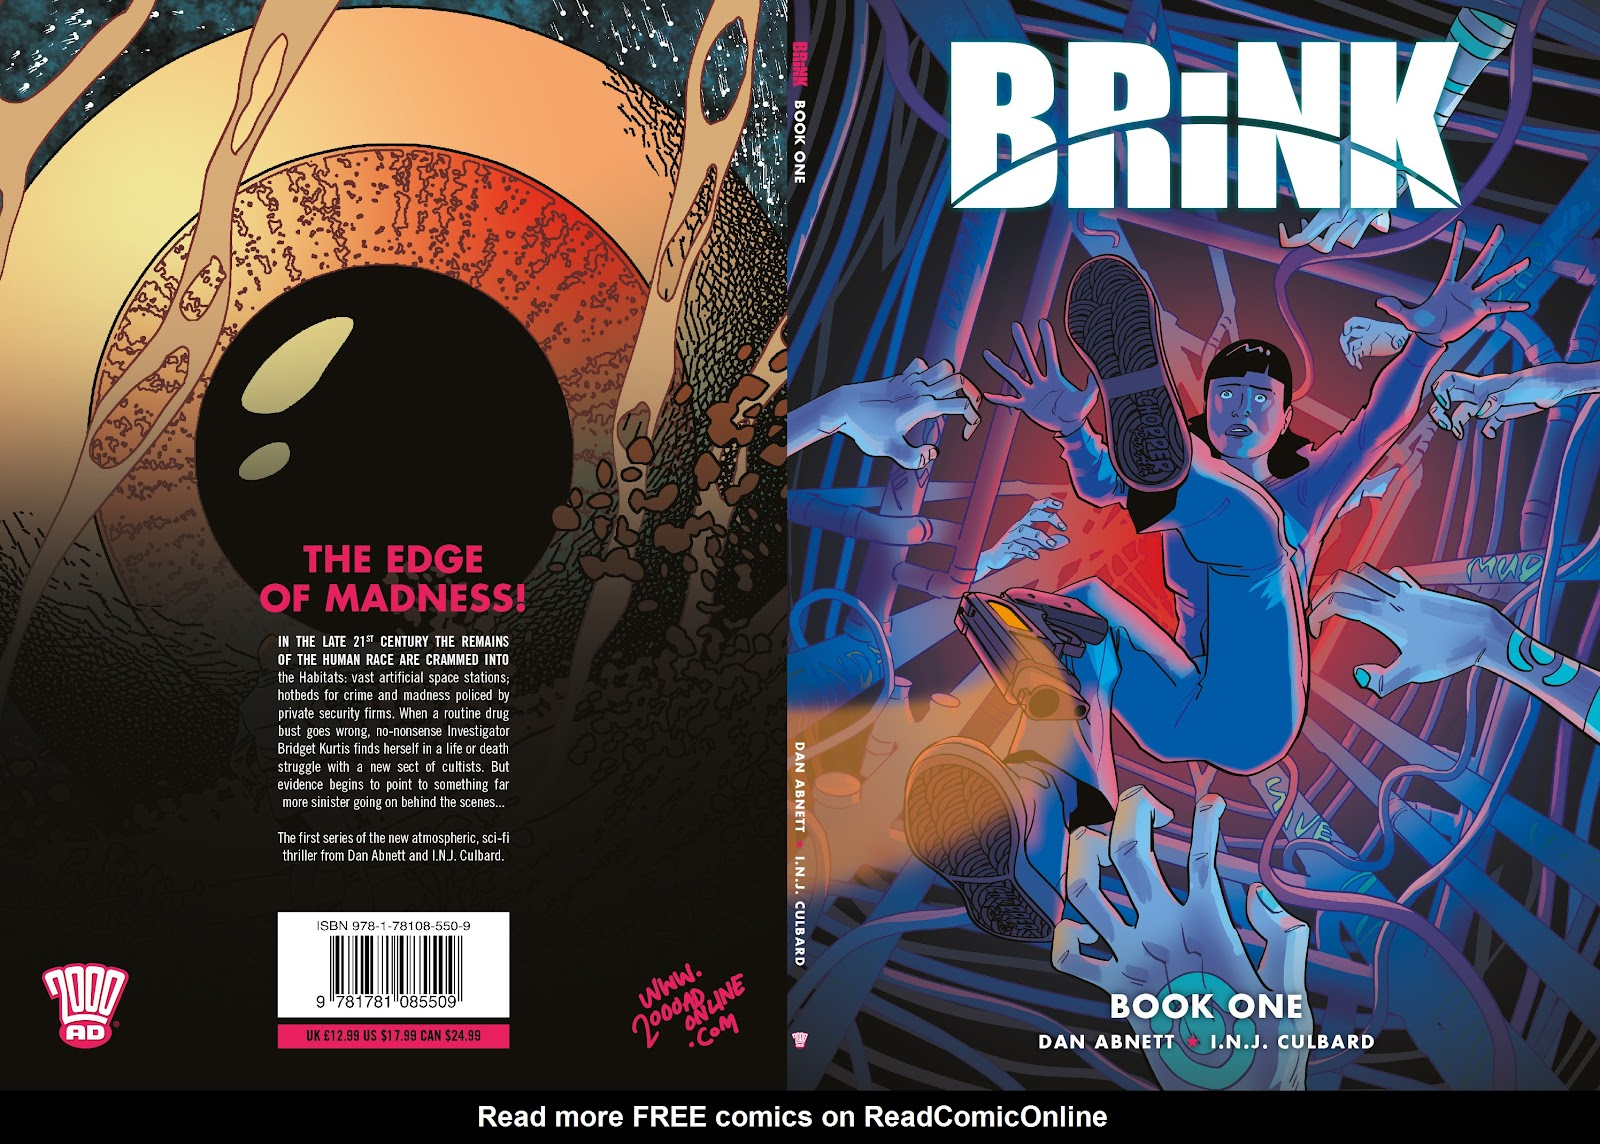 Read online Brink comic -  Issue # TPB 1 - 1